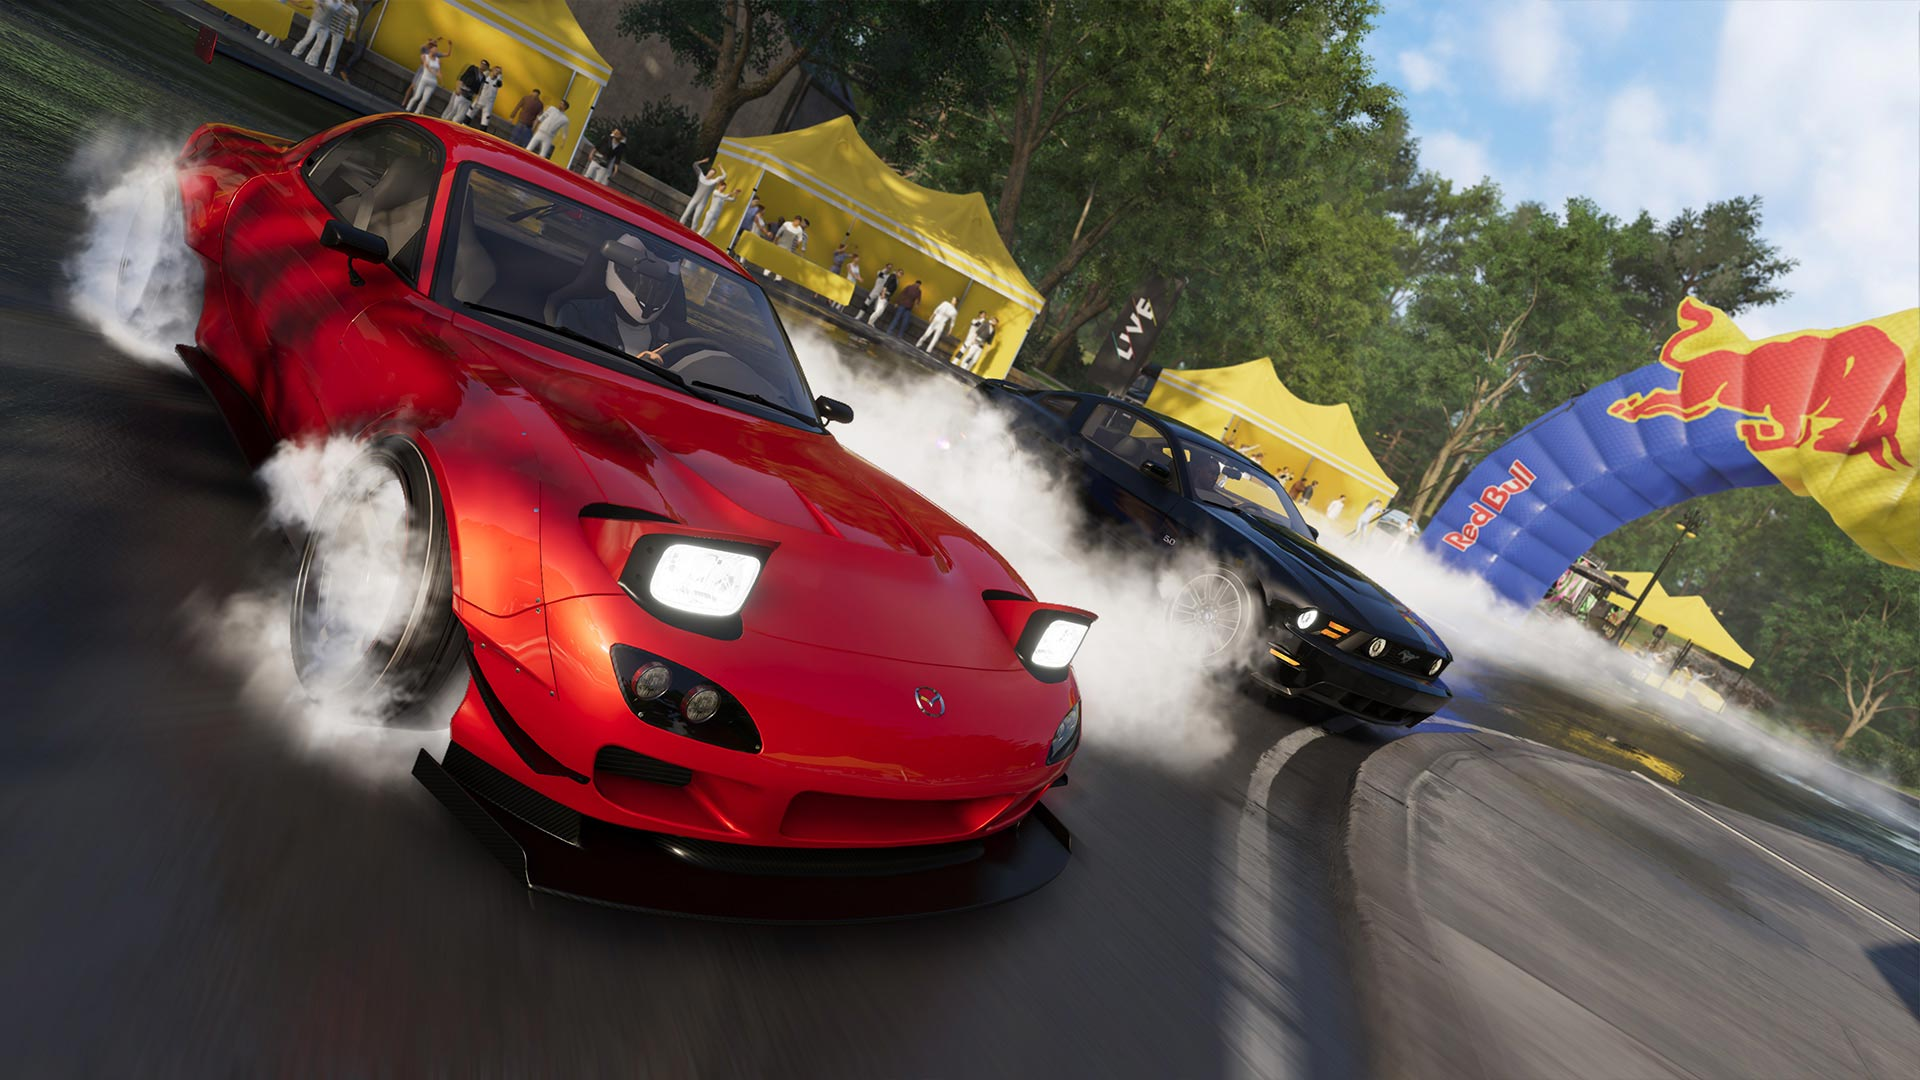 The Crew 2 Cars Guide All Car Disciplines And Full Car List In The